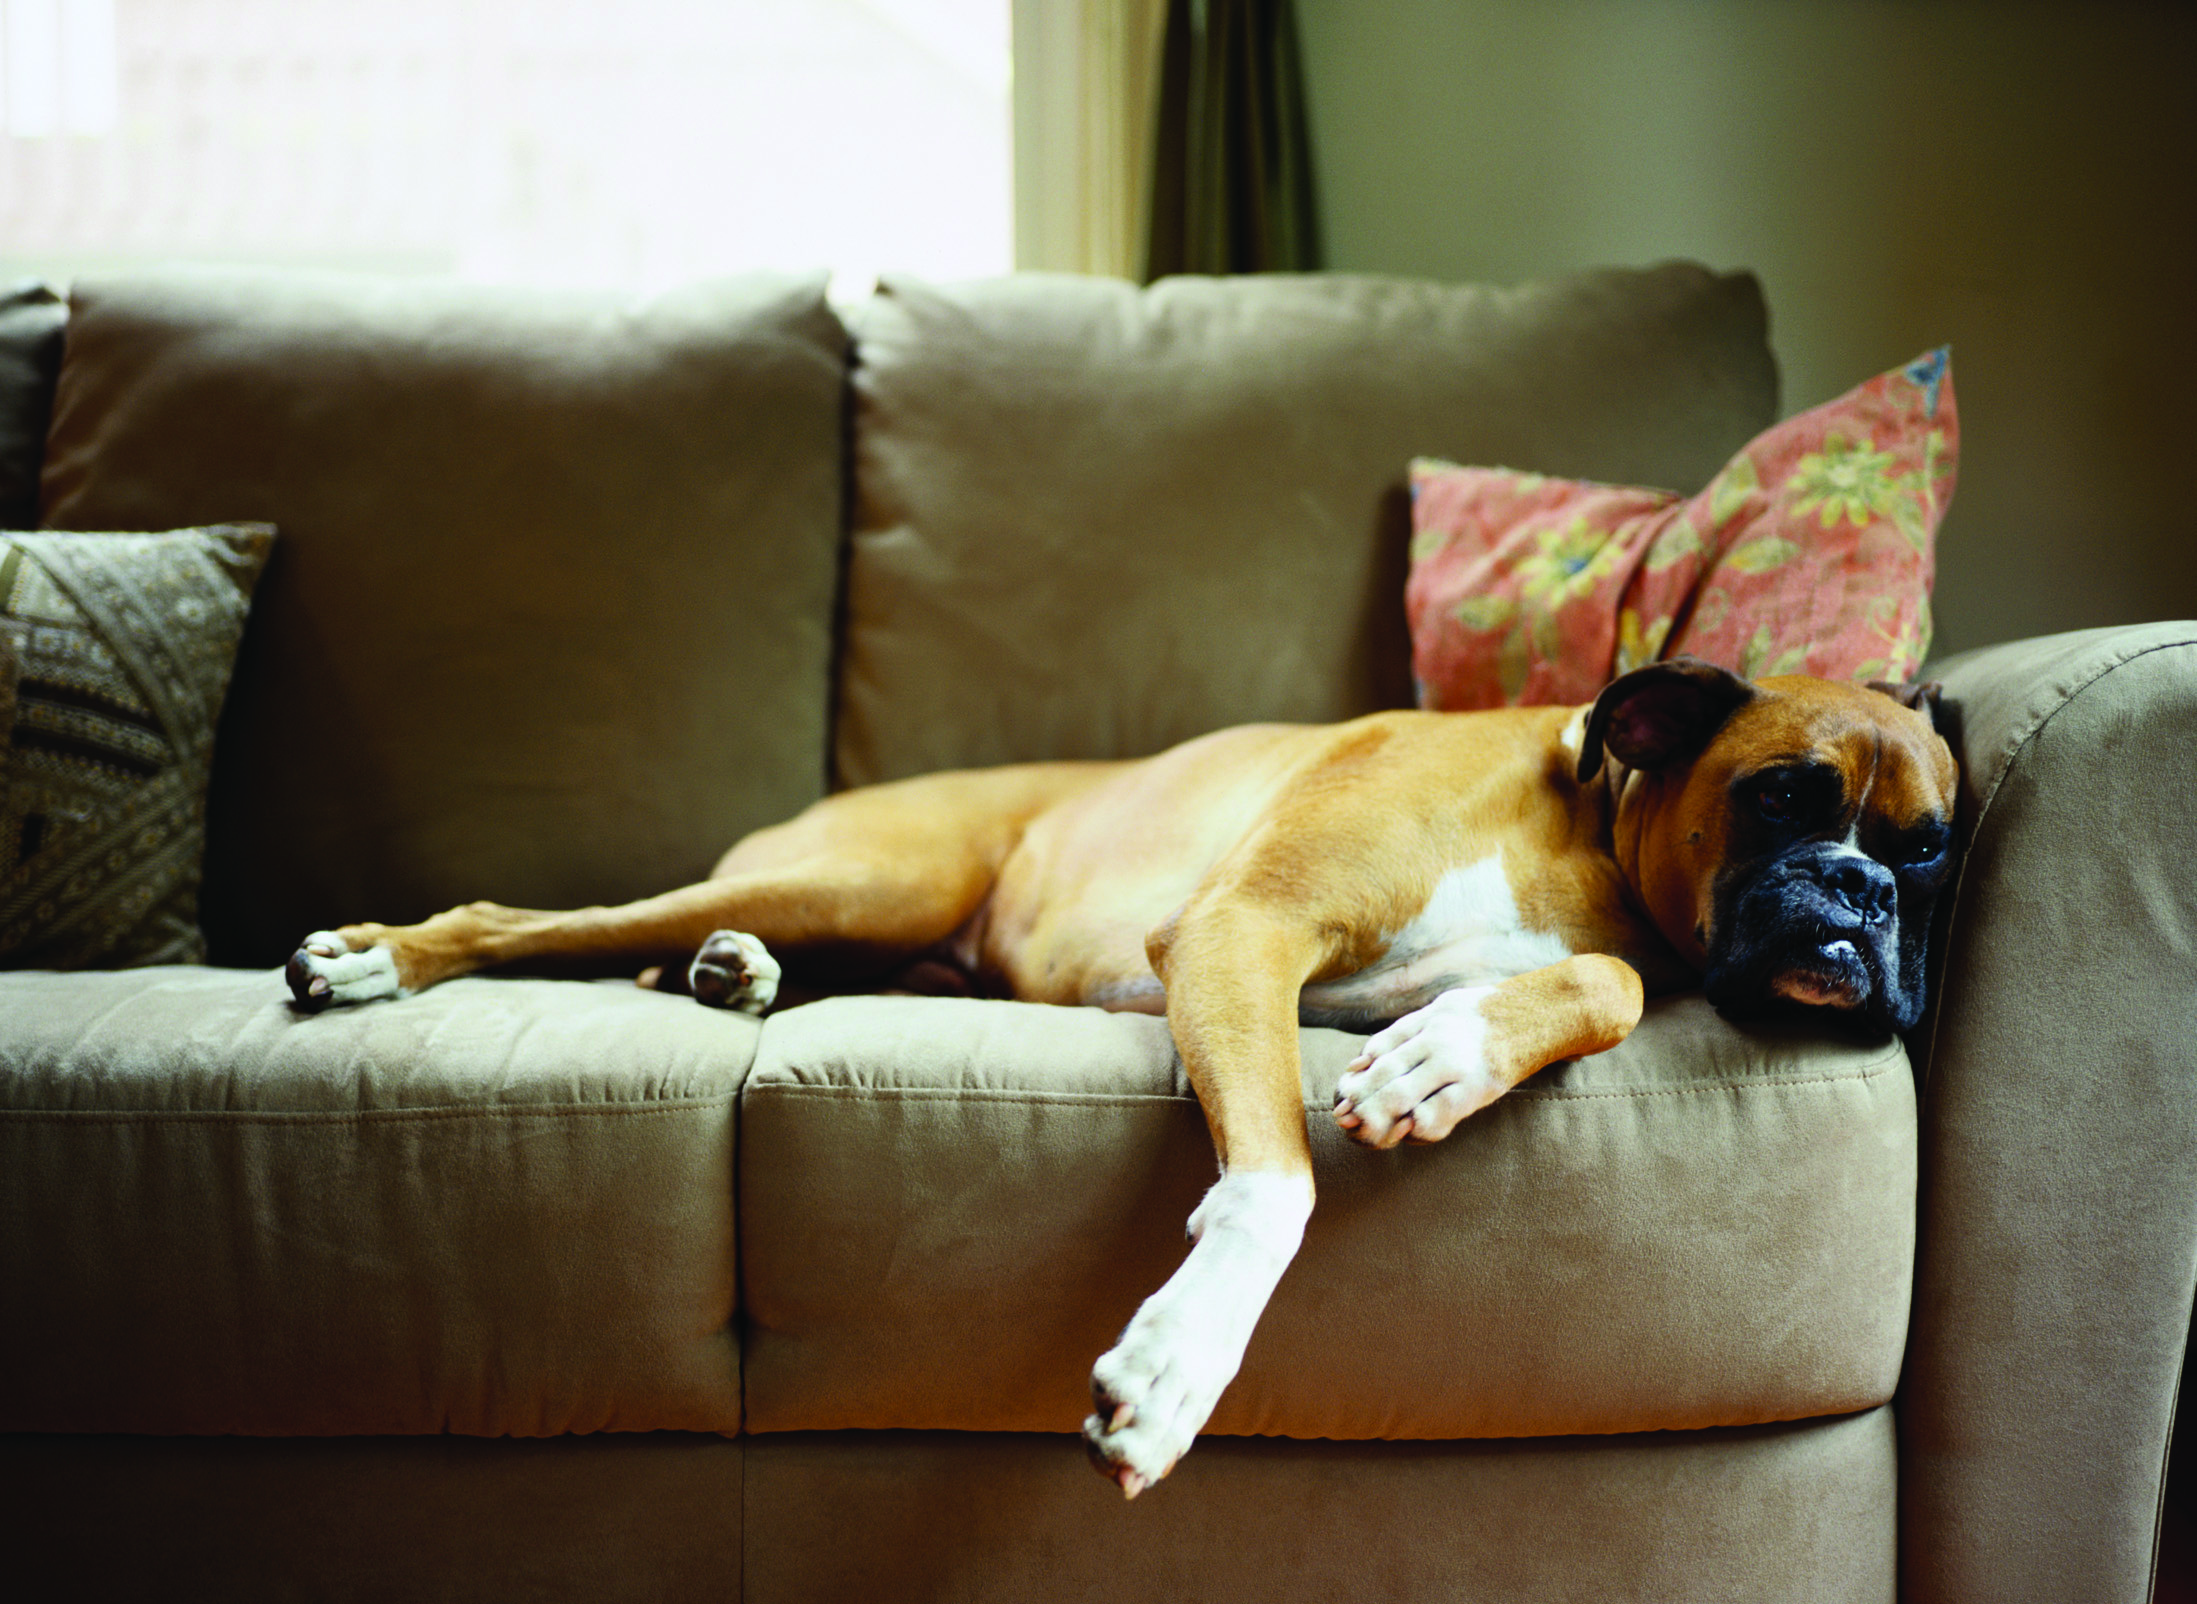 Dog lying down on couch